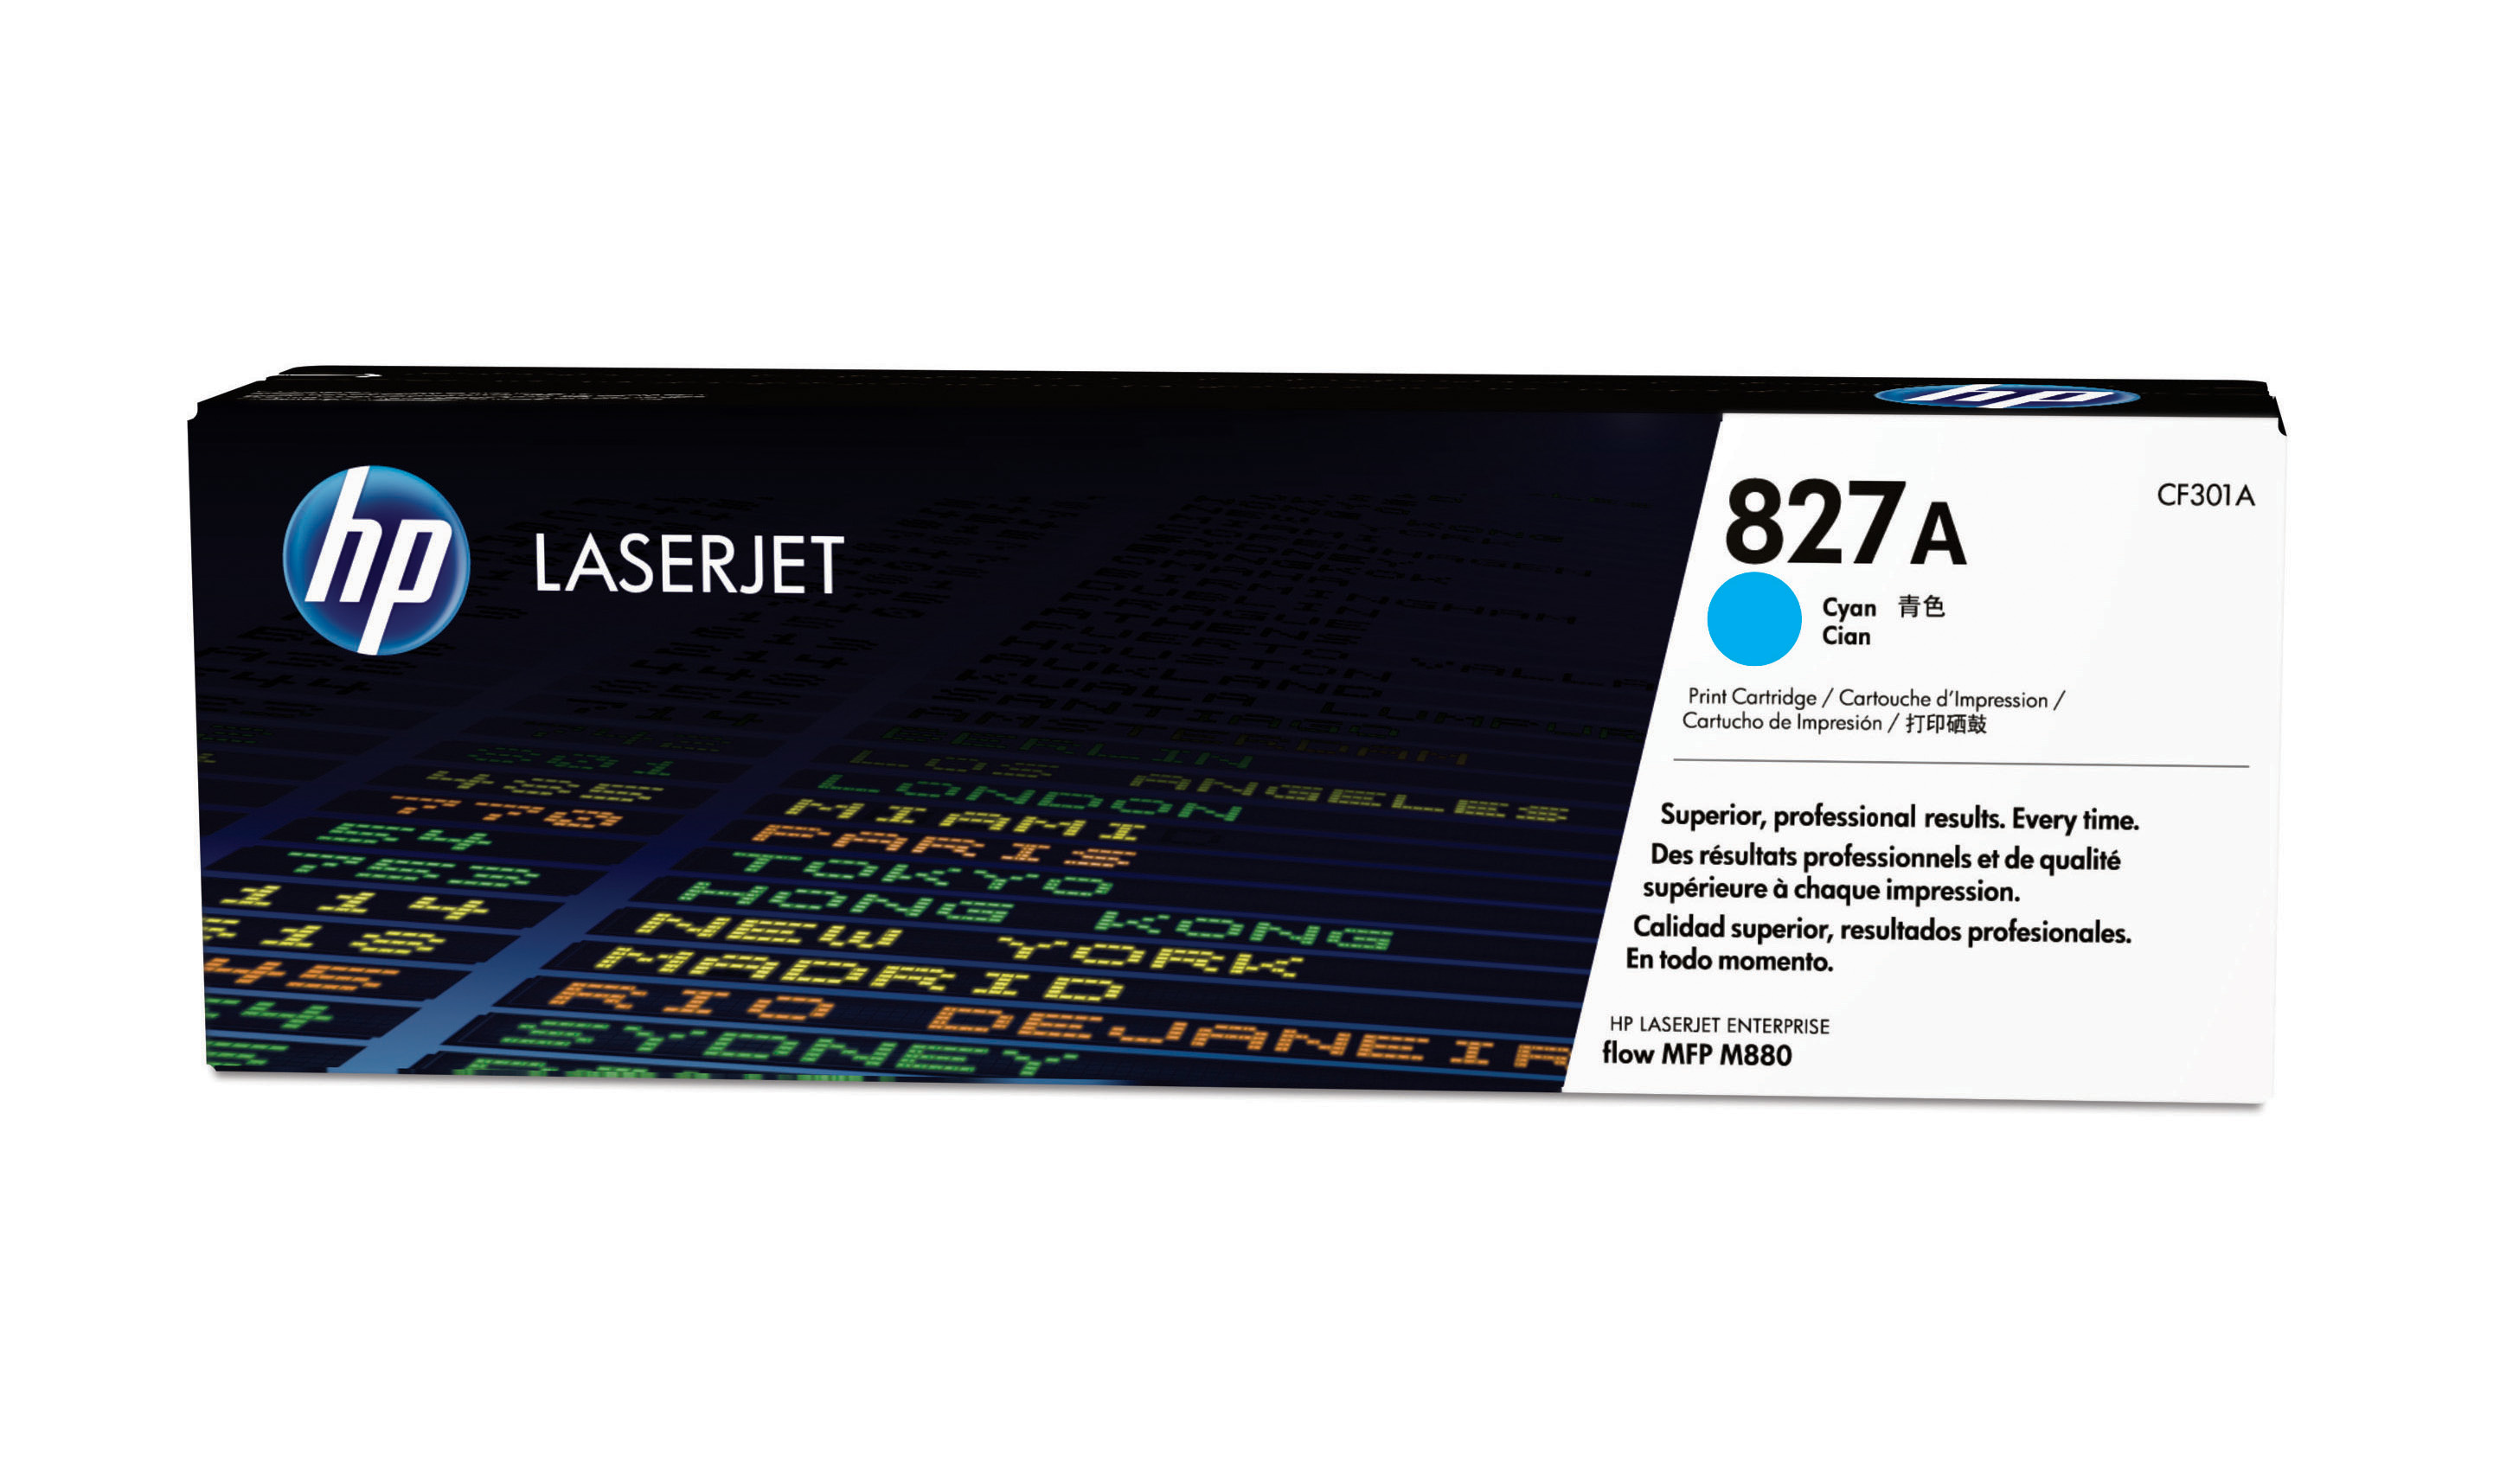 HP 827A Cyan Toner Cartridge CF301A